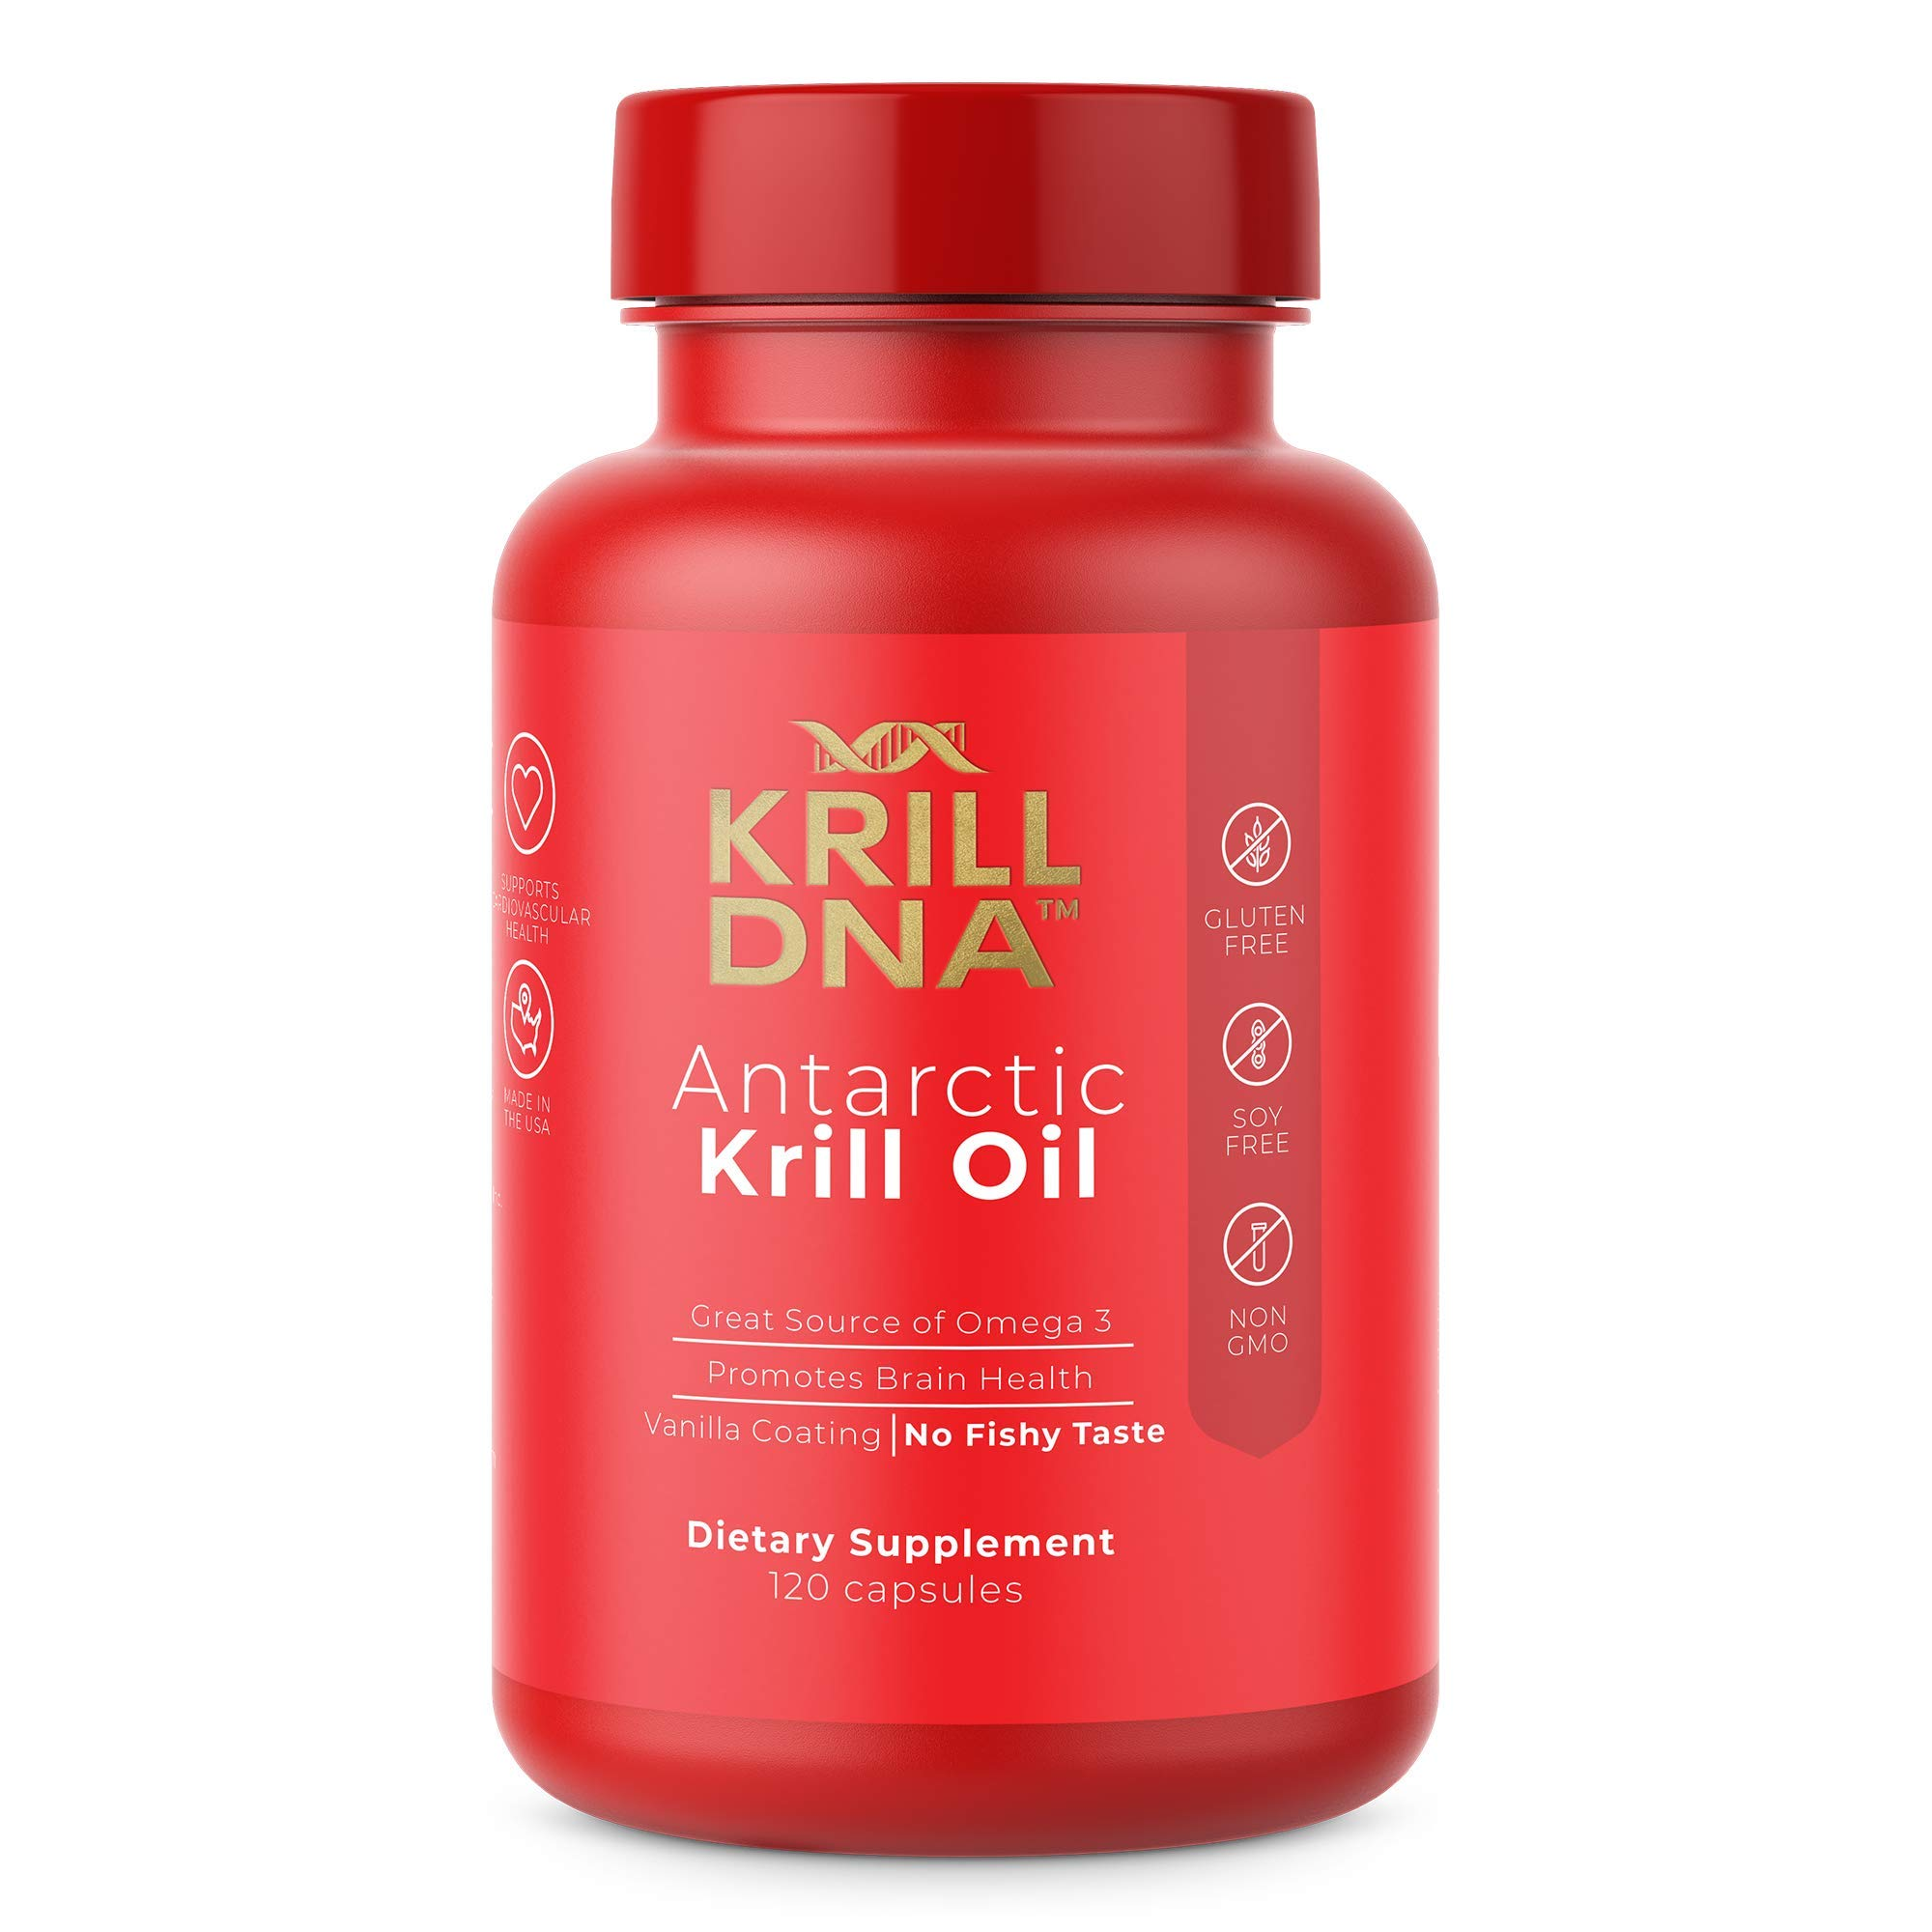 Antarctic Krill Oil by KrillDNA | 1000 mg with Astaxanthin, Omega 3, DHA, EPA, and Phospholipids | Vanilla Coating, No Smell, No Fishy Taste | (120 softgels-60 Servings)